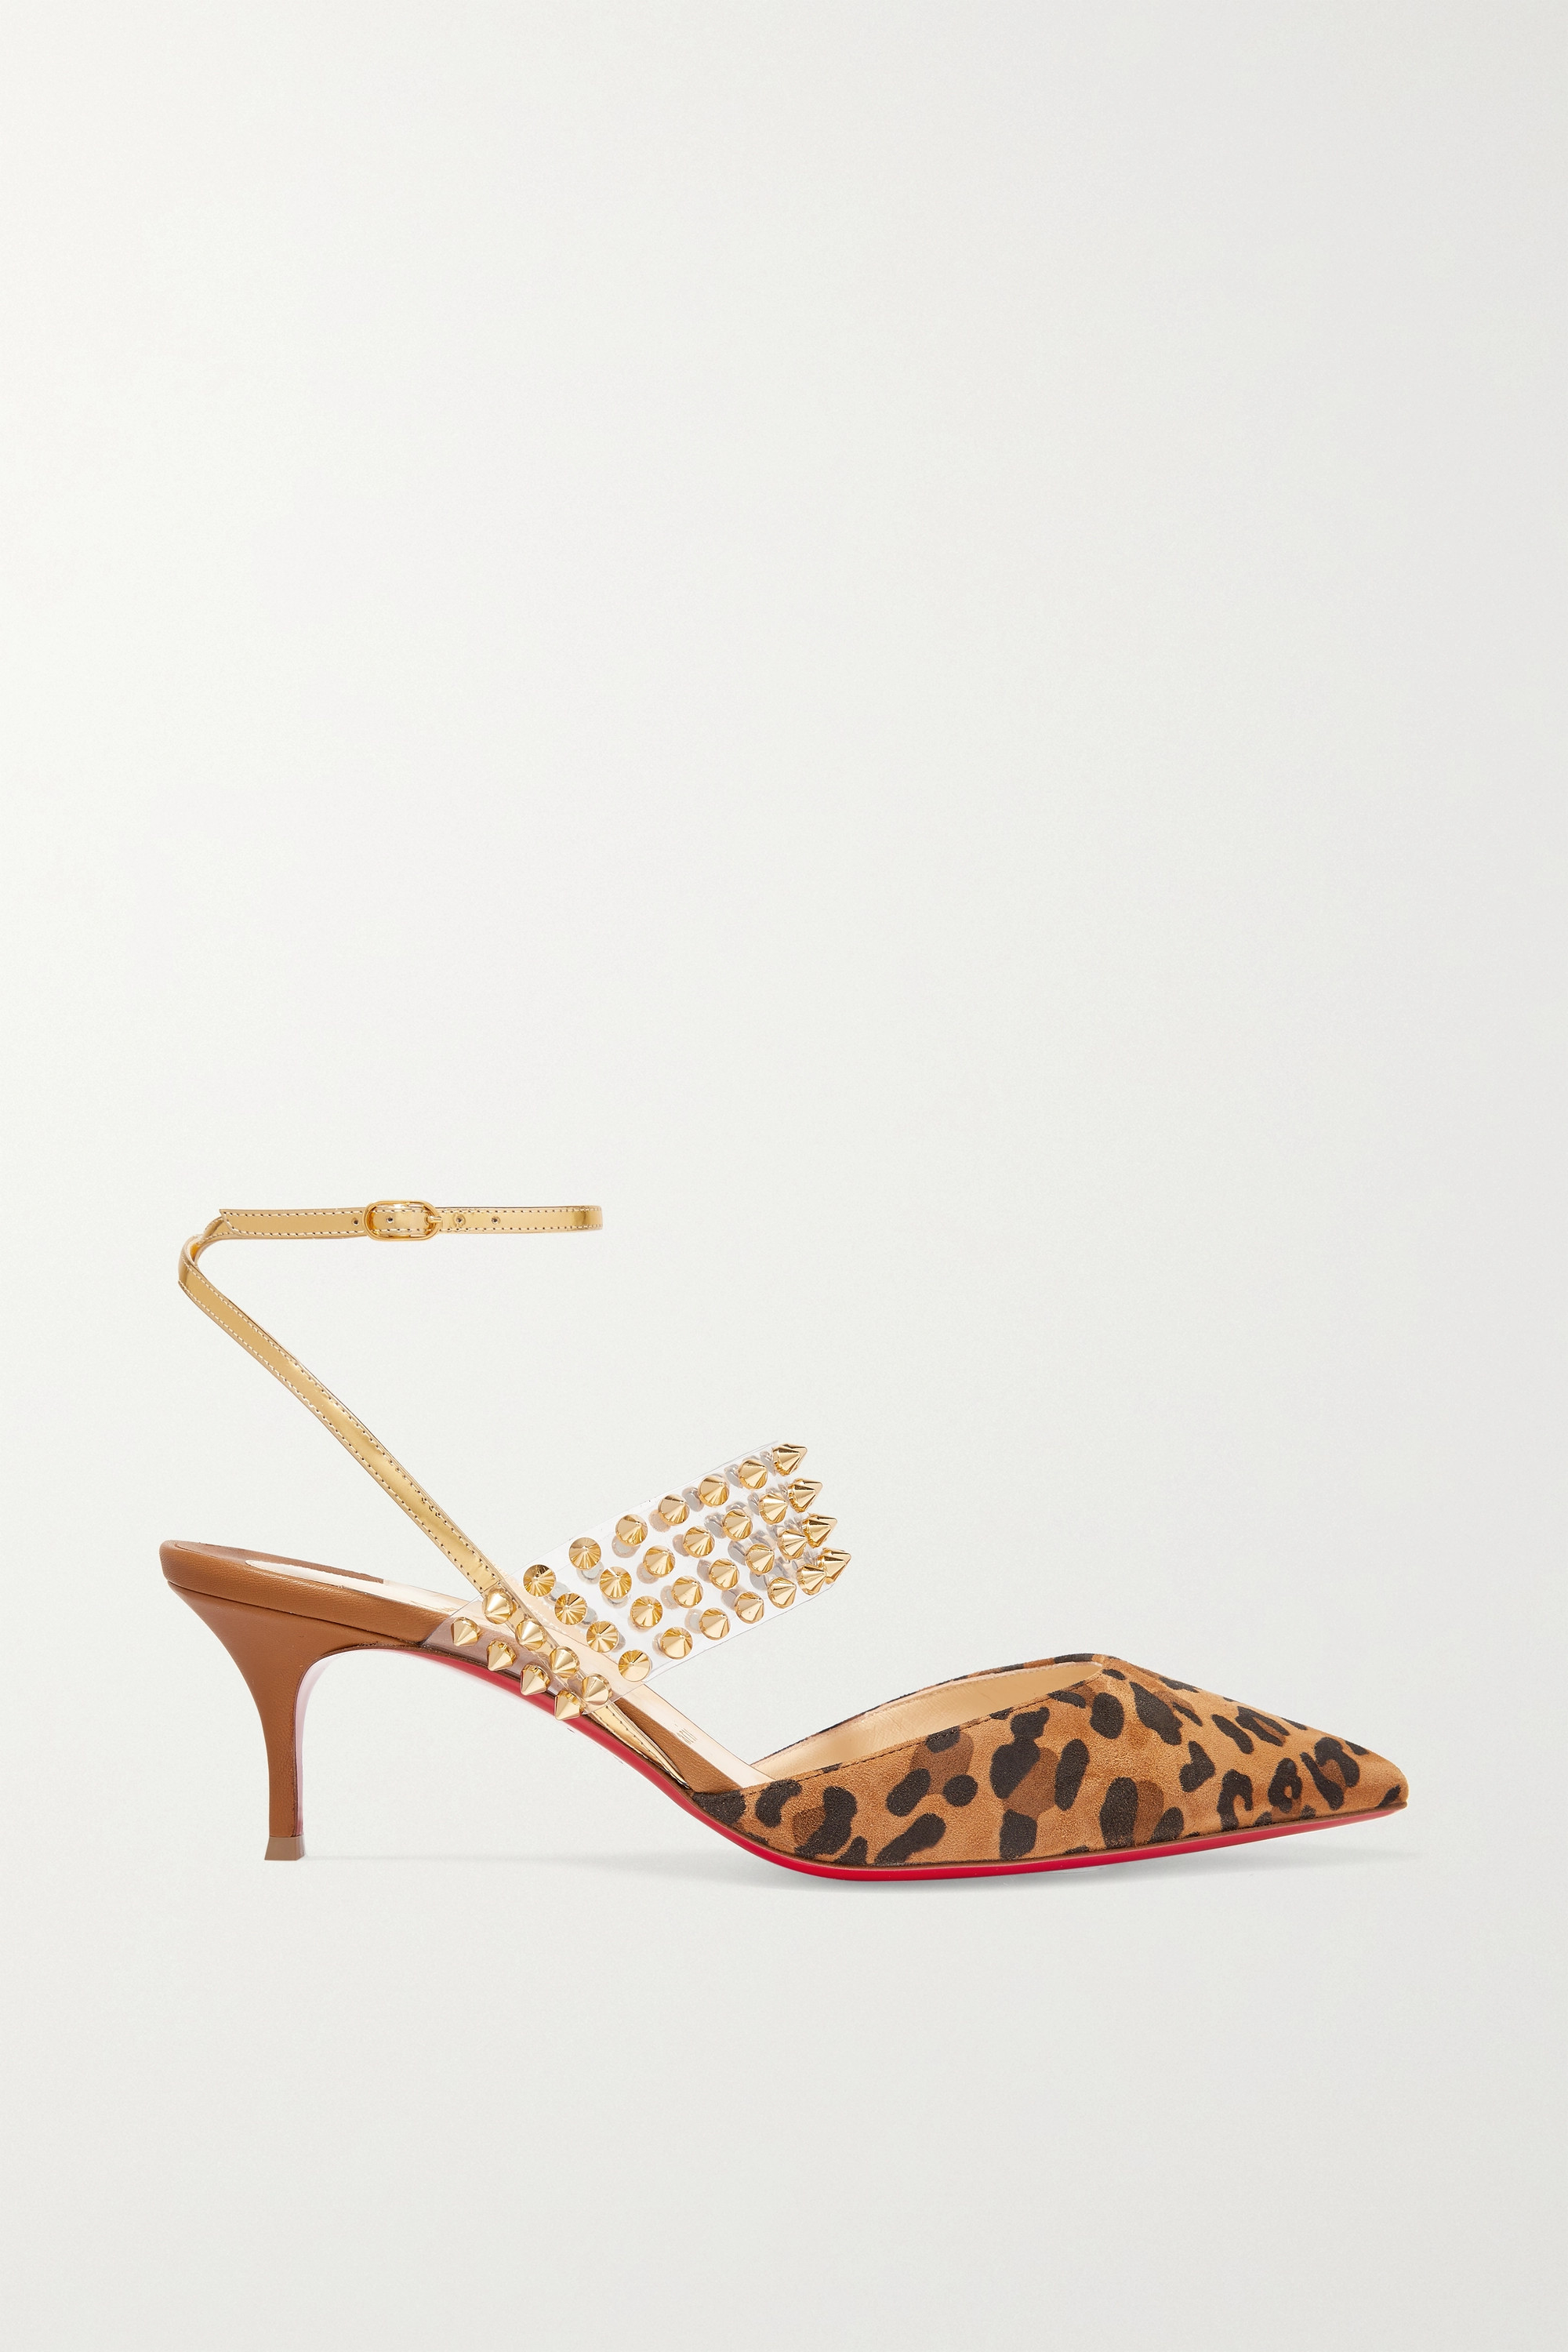 Christian Louboutin - Levita 55 spiked PVC, mirrored-leather and leopard-print suede pumps